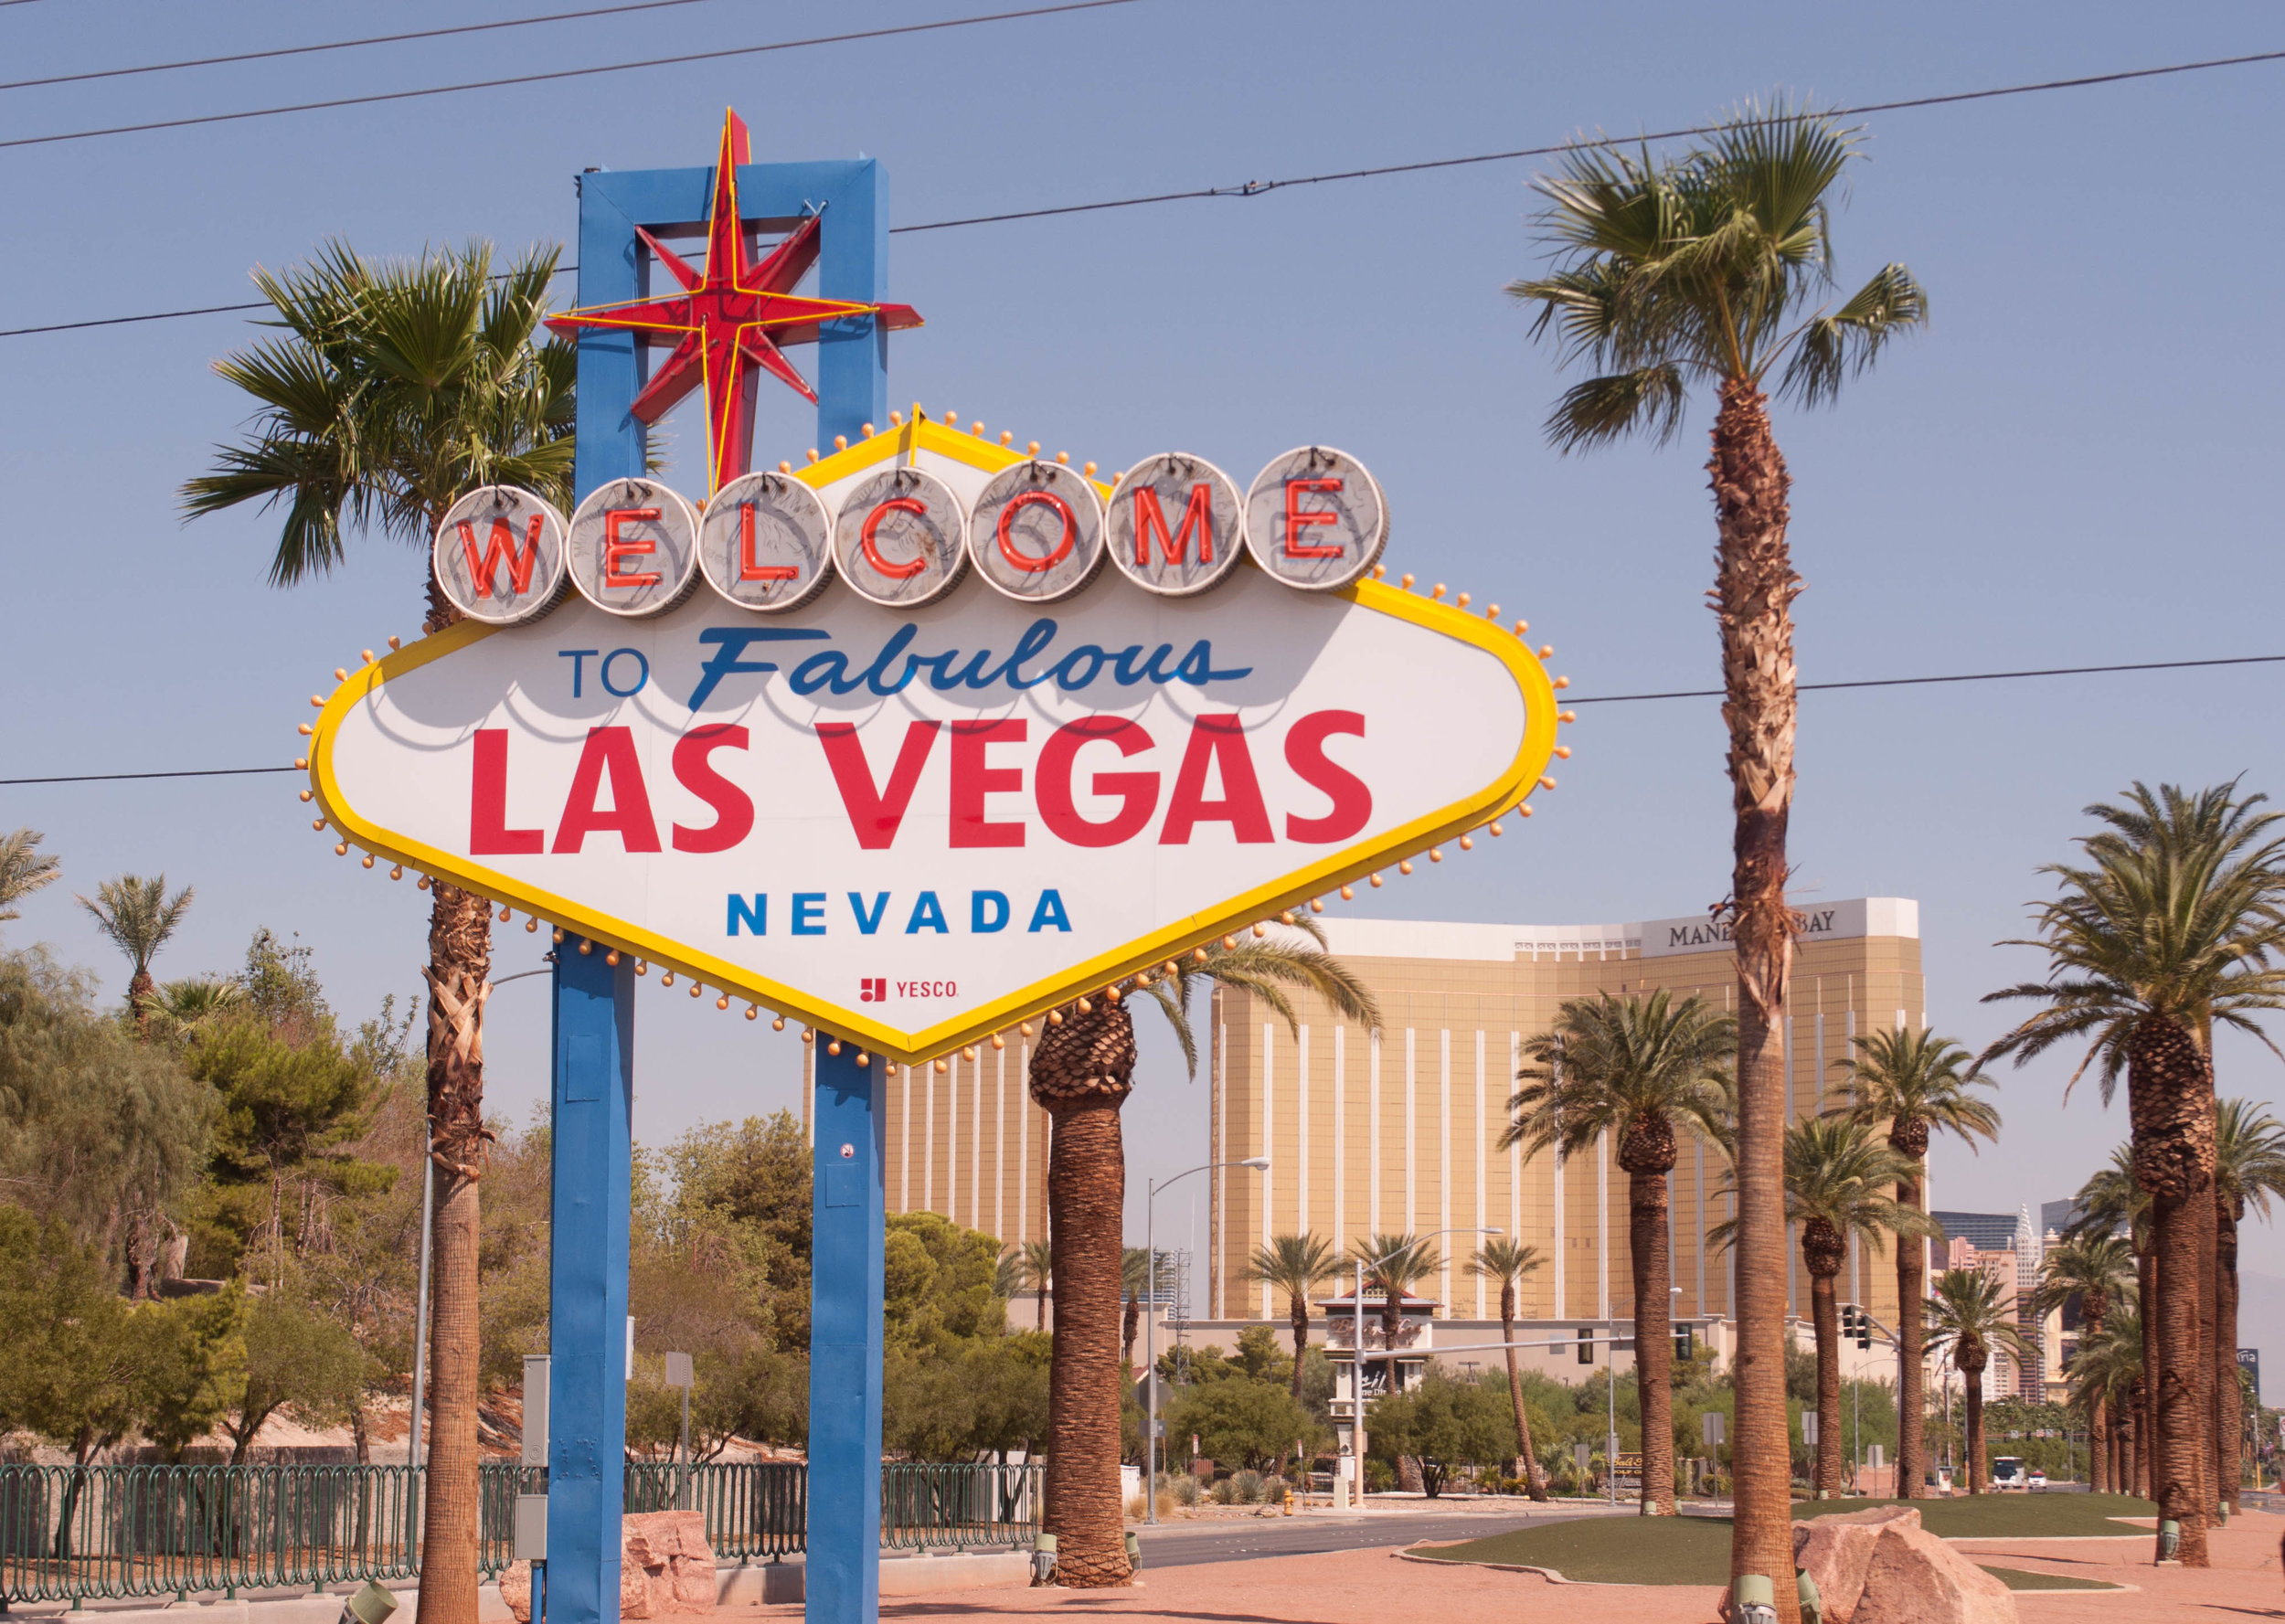 The Las Vegas Sign with palm trees and the Mandalay Bay hotel in the background